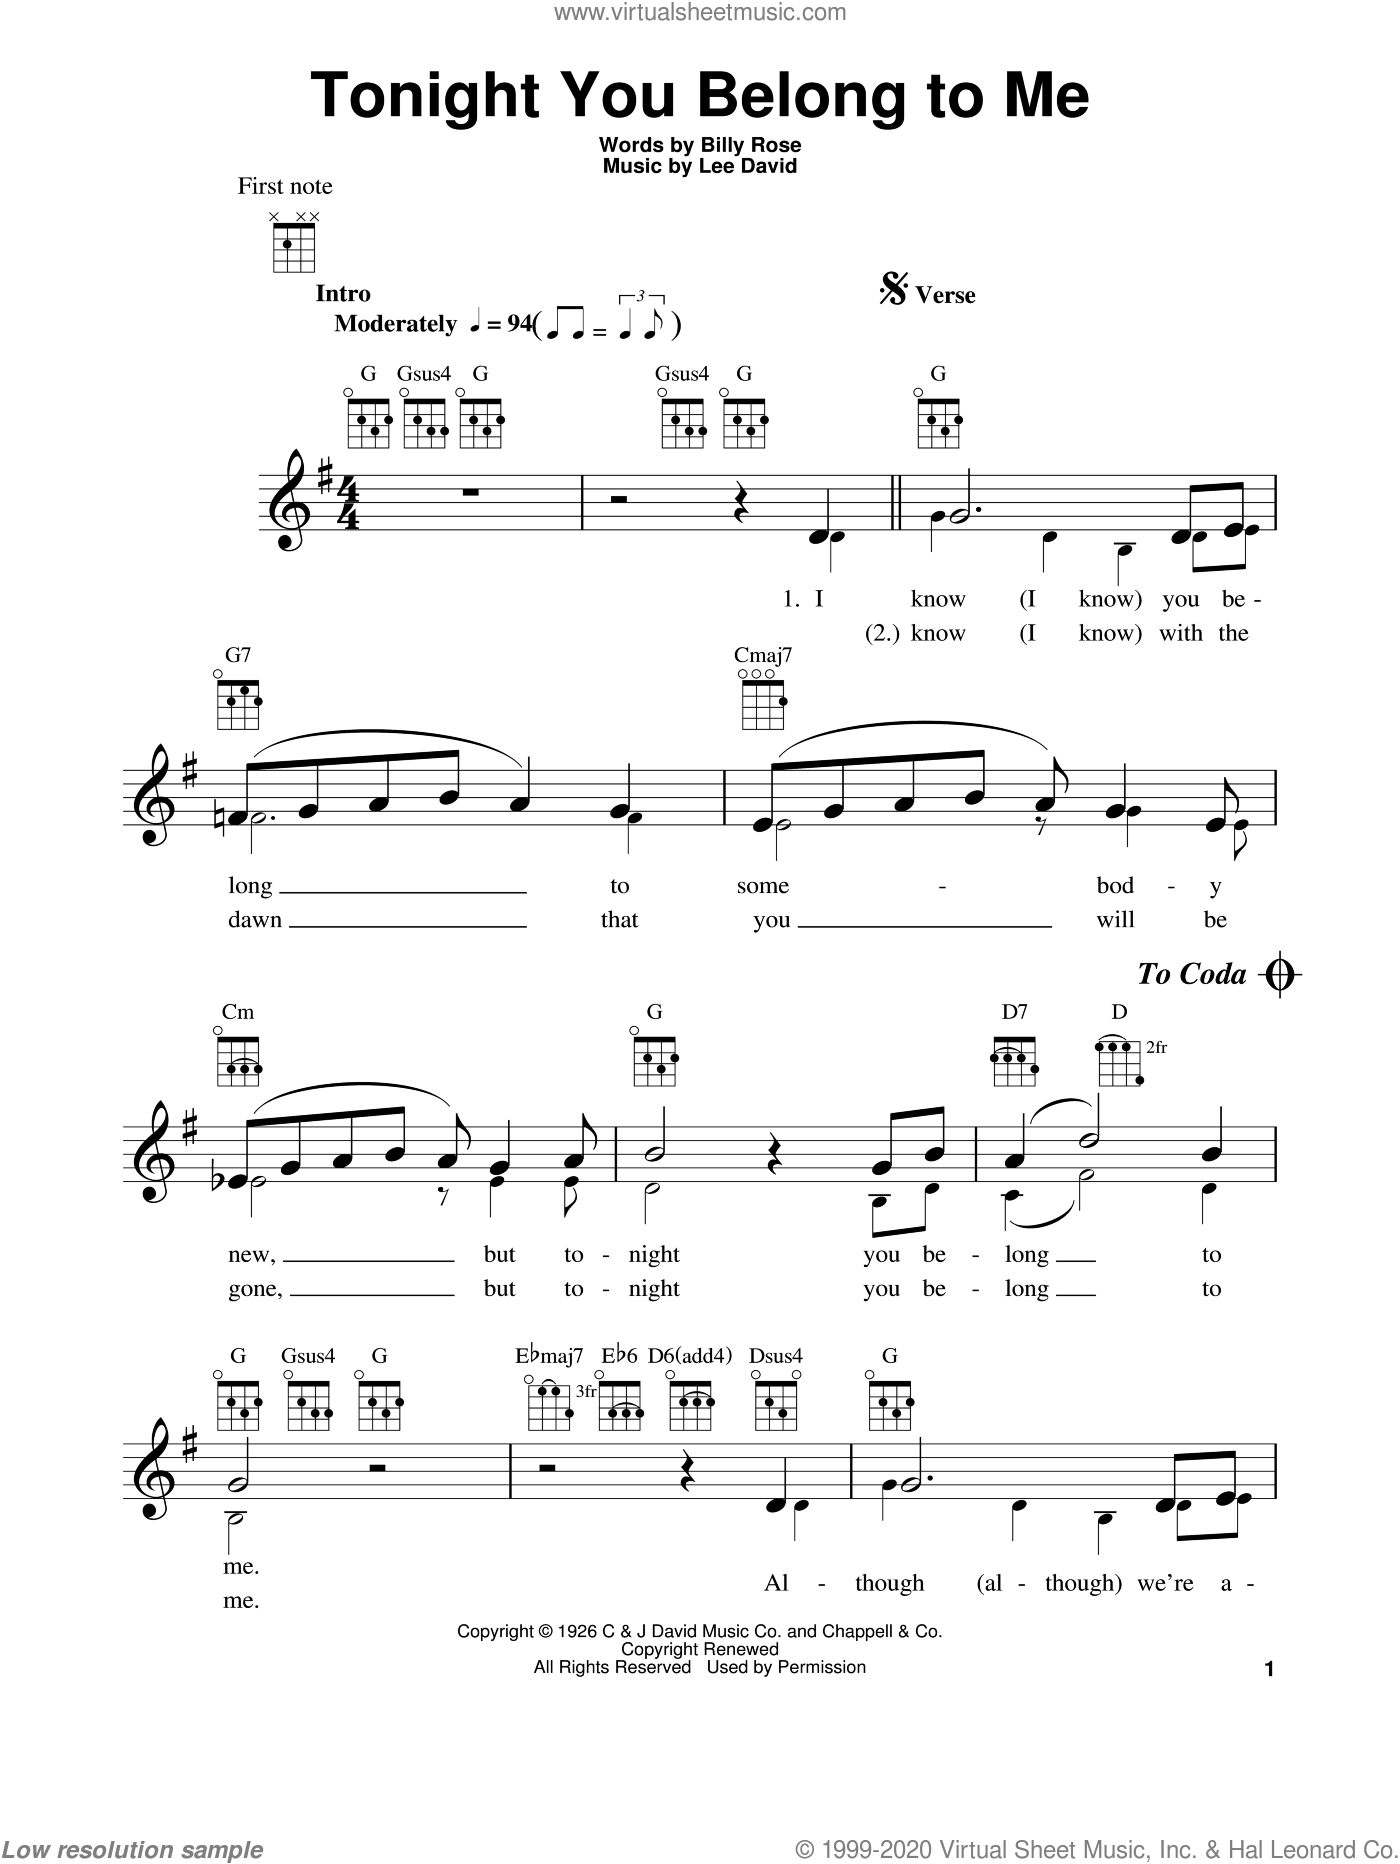 Tonight You Belong To Me sheet music for ukulele by Lee David